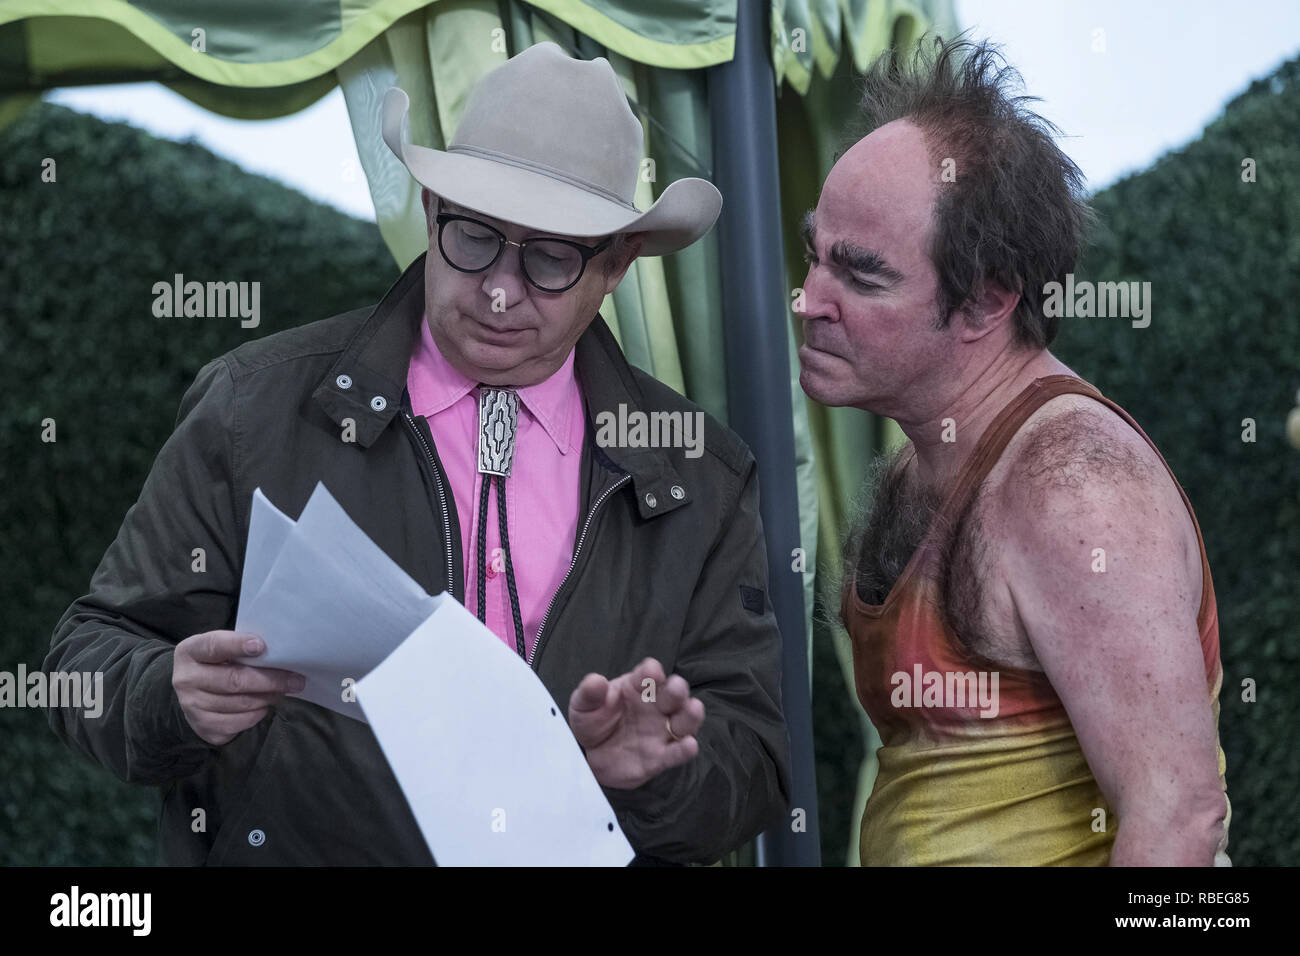 Barry Sonnenfeld, Roger Bart, 'A Series Of Unfortunate Events' Season 3 (2018) Credit: Netflix / The Hollywood Archive - Stock Image